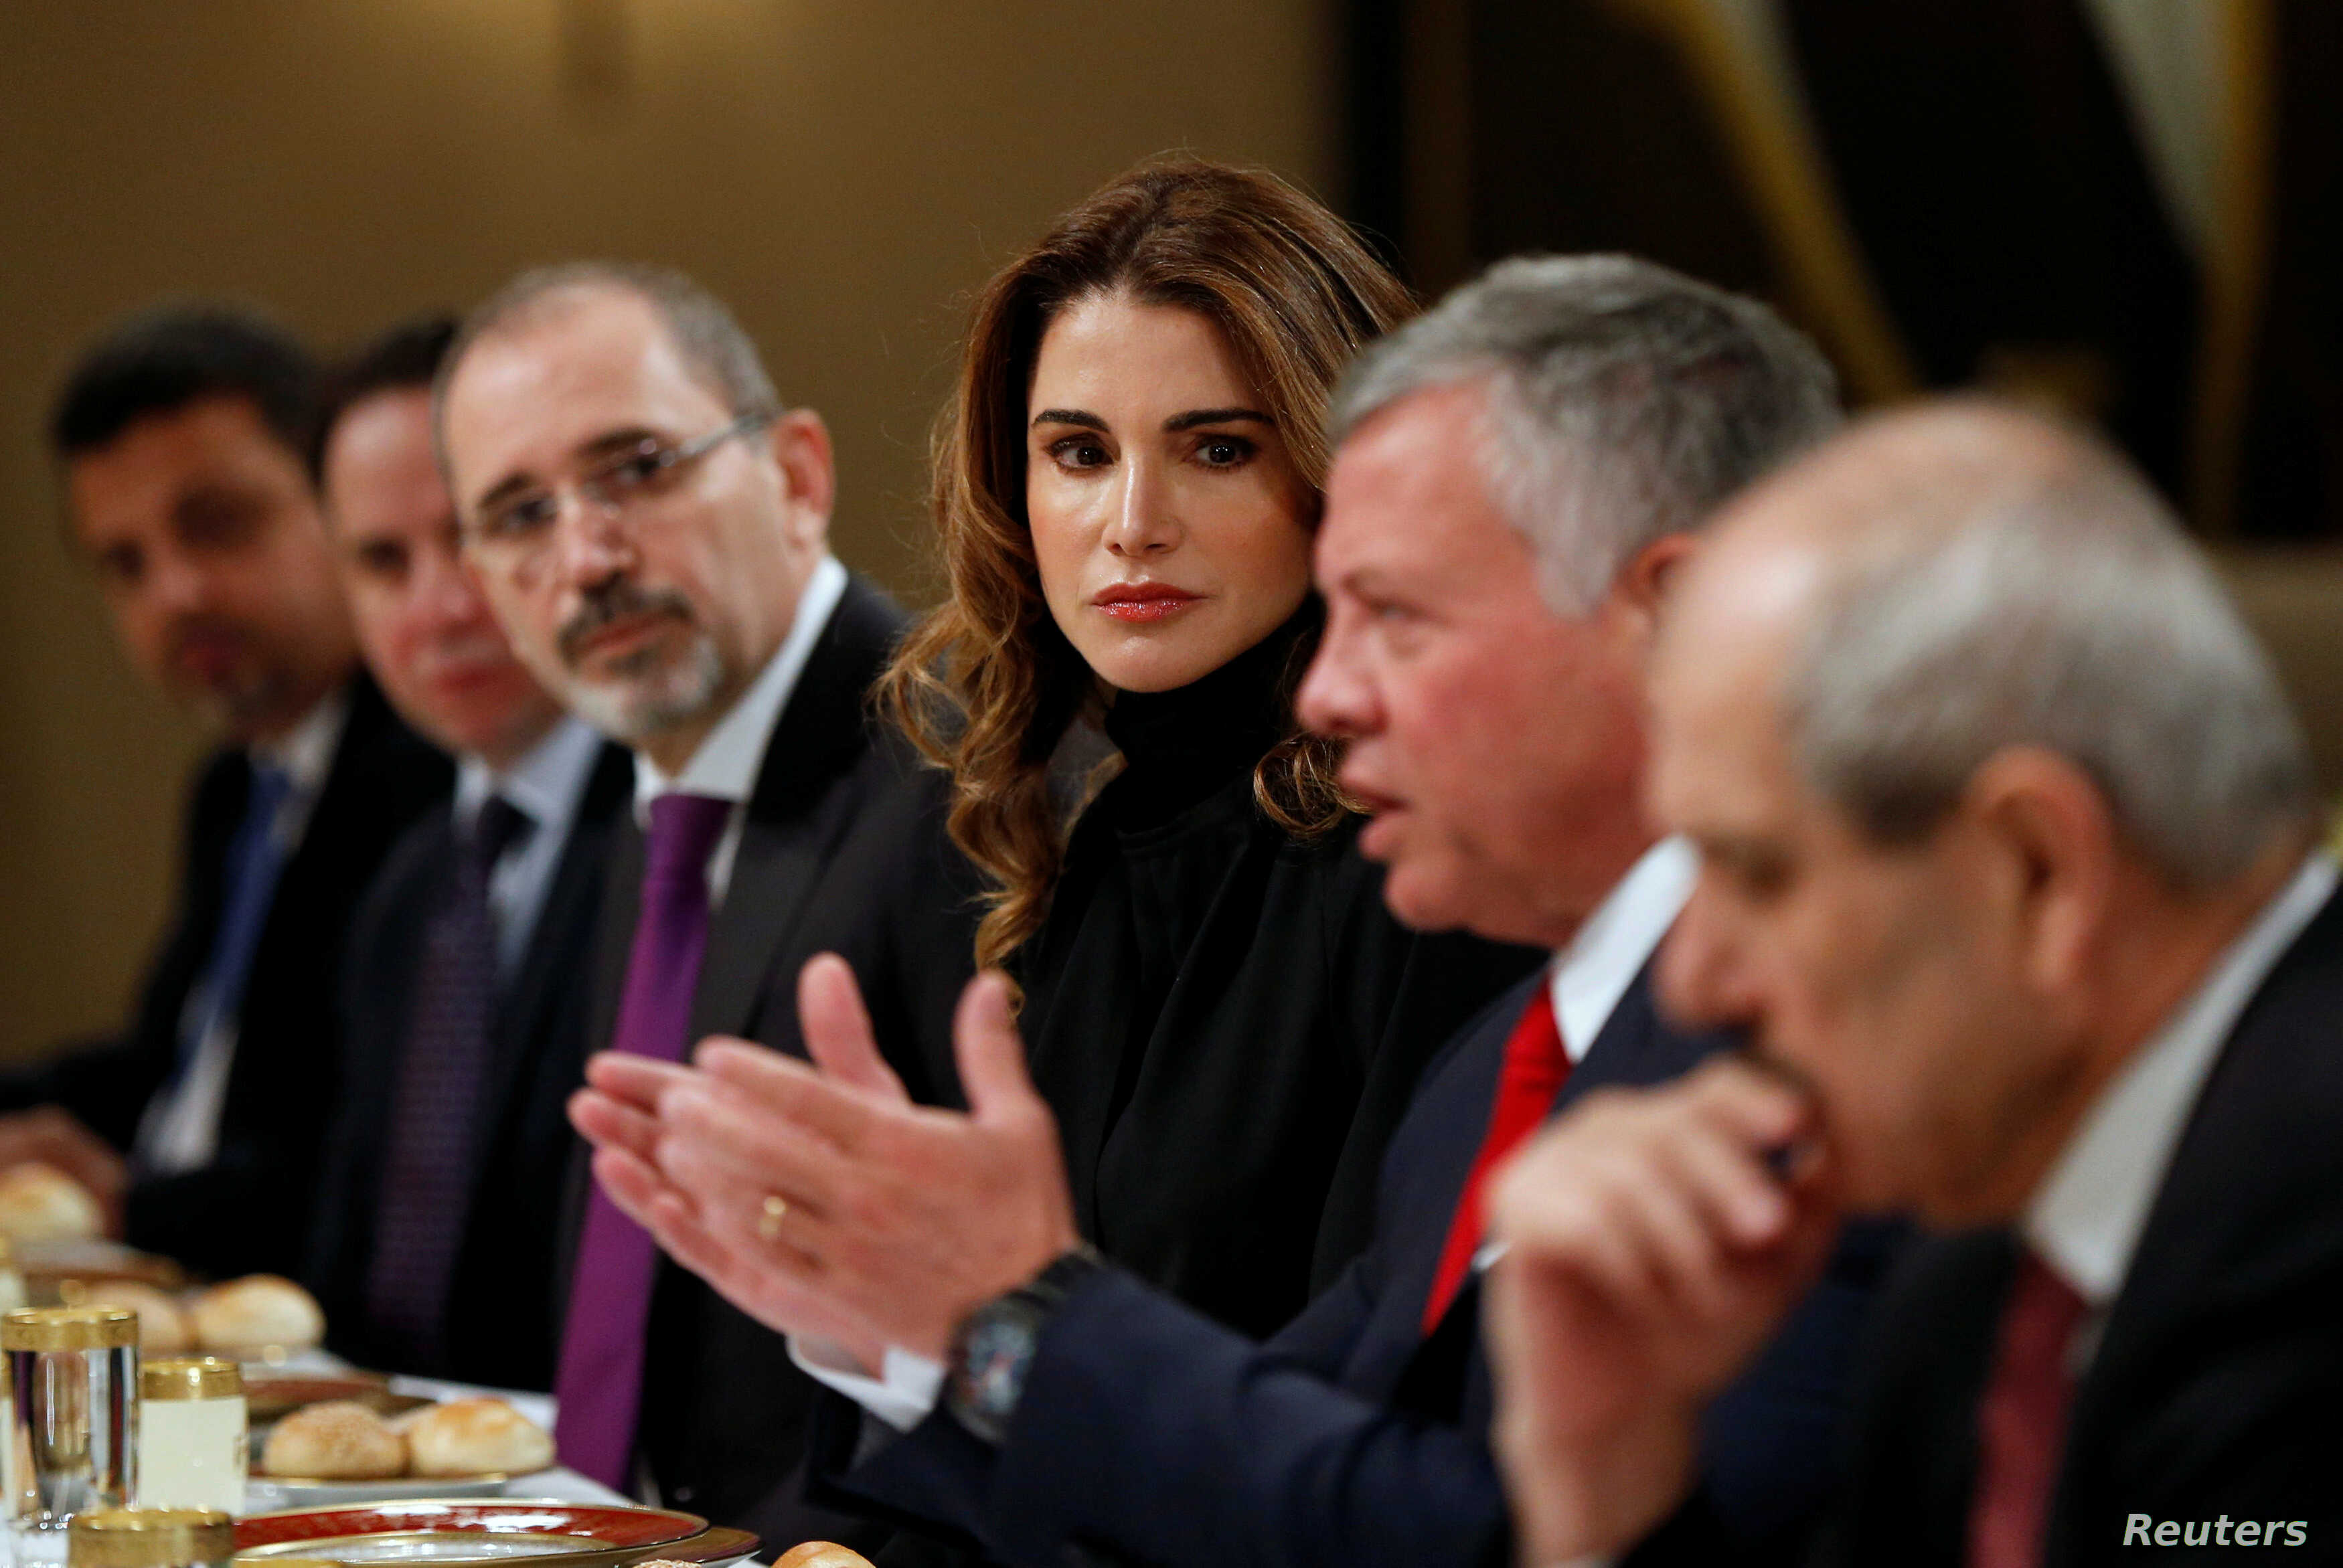 Jordan's King Abdullah and wife Queen Rania are seen during their meeting with U.S. Vice President Mike Pence and wife Karen Pence (not pictured) at the Royal Palace in Amman, Jordan, Jan. 21, 2018.